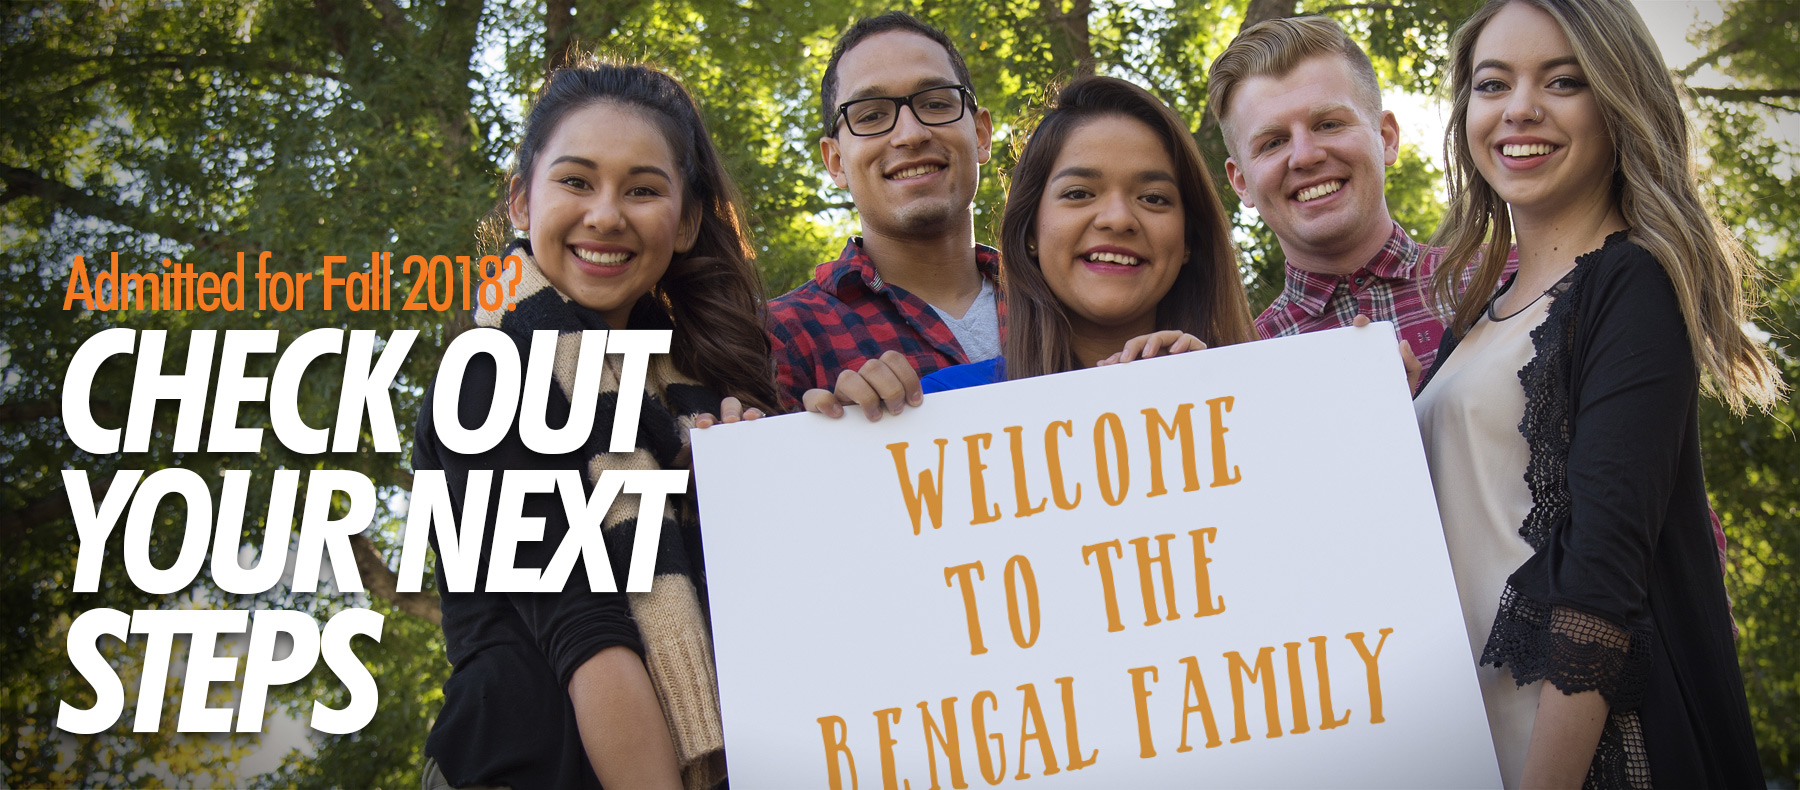 Admitted for Fall 2018 Check out your next steps Welcome to the Bengal Family